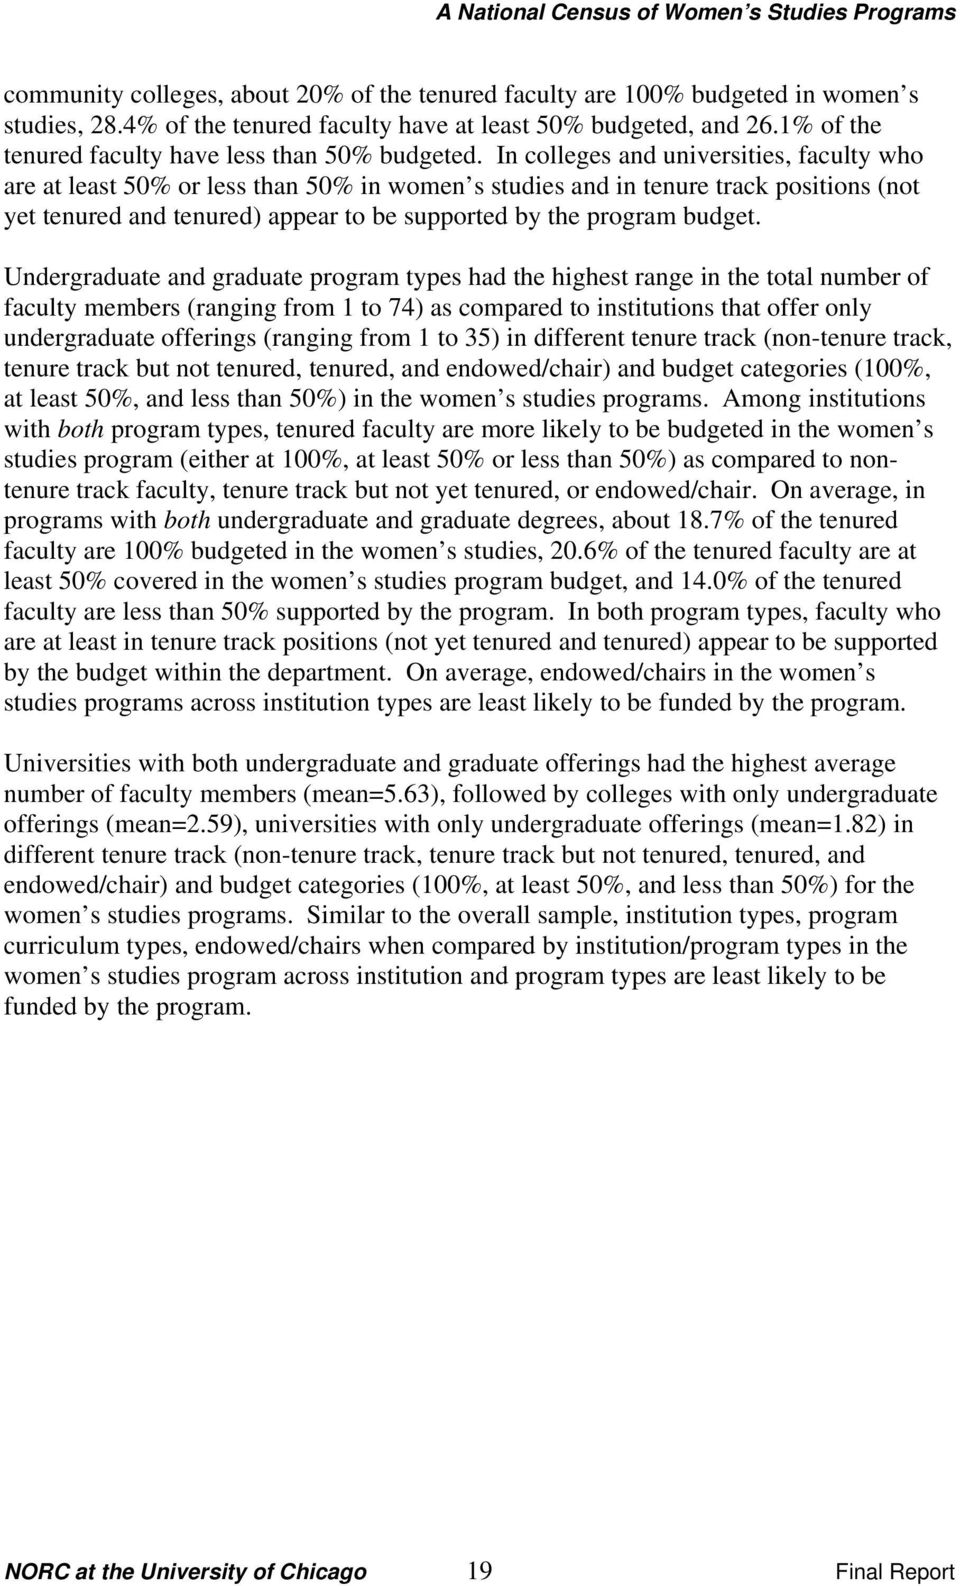 In colleges and universities, faculty who are at least 50% or less than 50% in women s studies and in tenure track positions (not yet tenured and tenured) appear to be supported by the program budget.